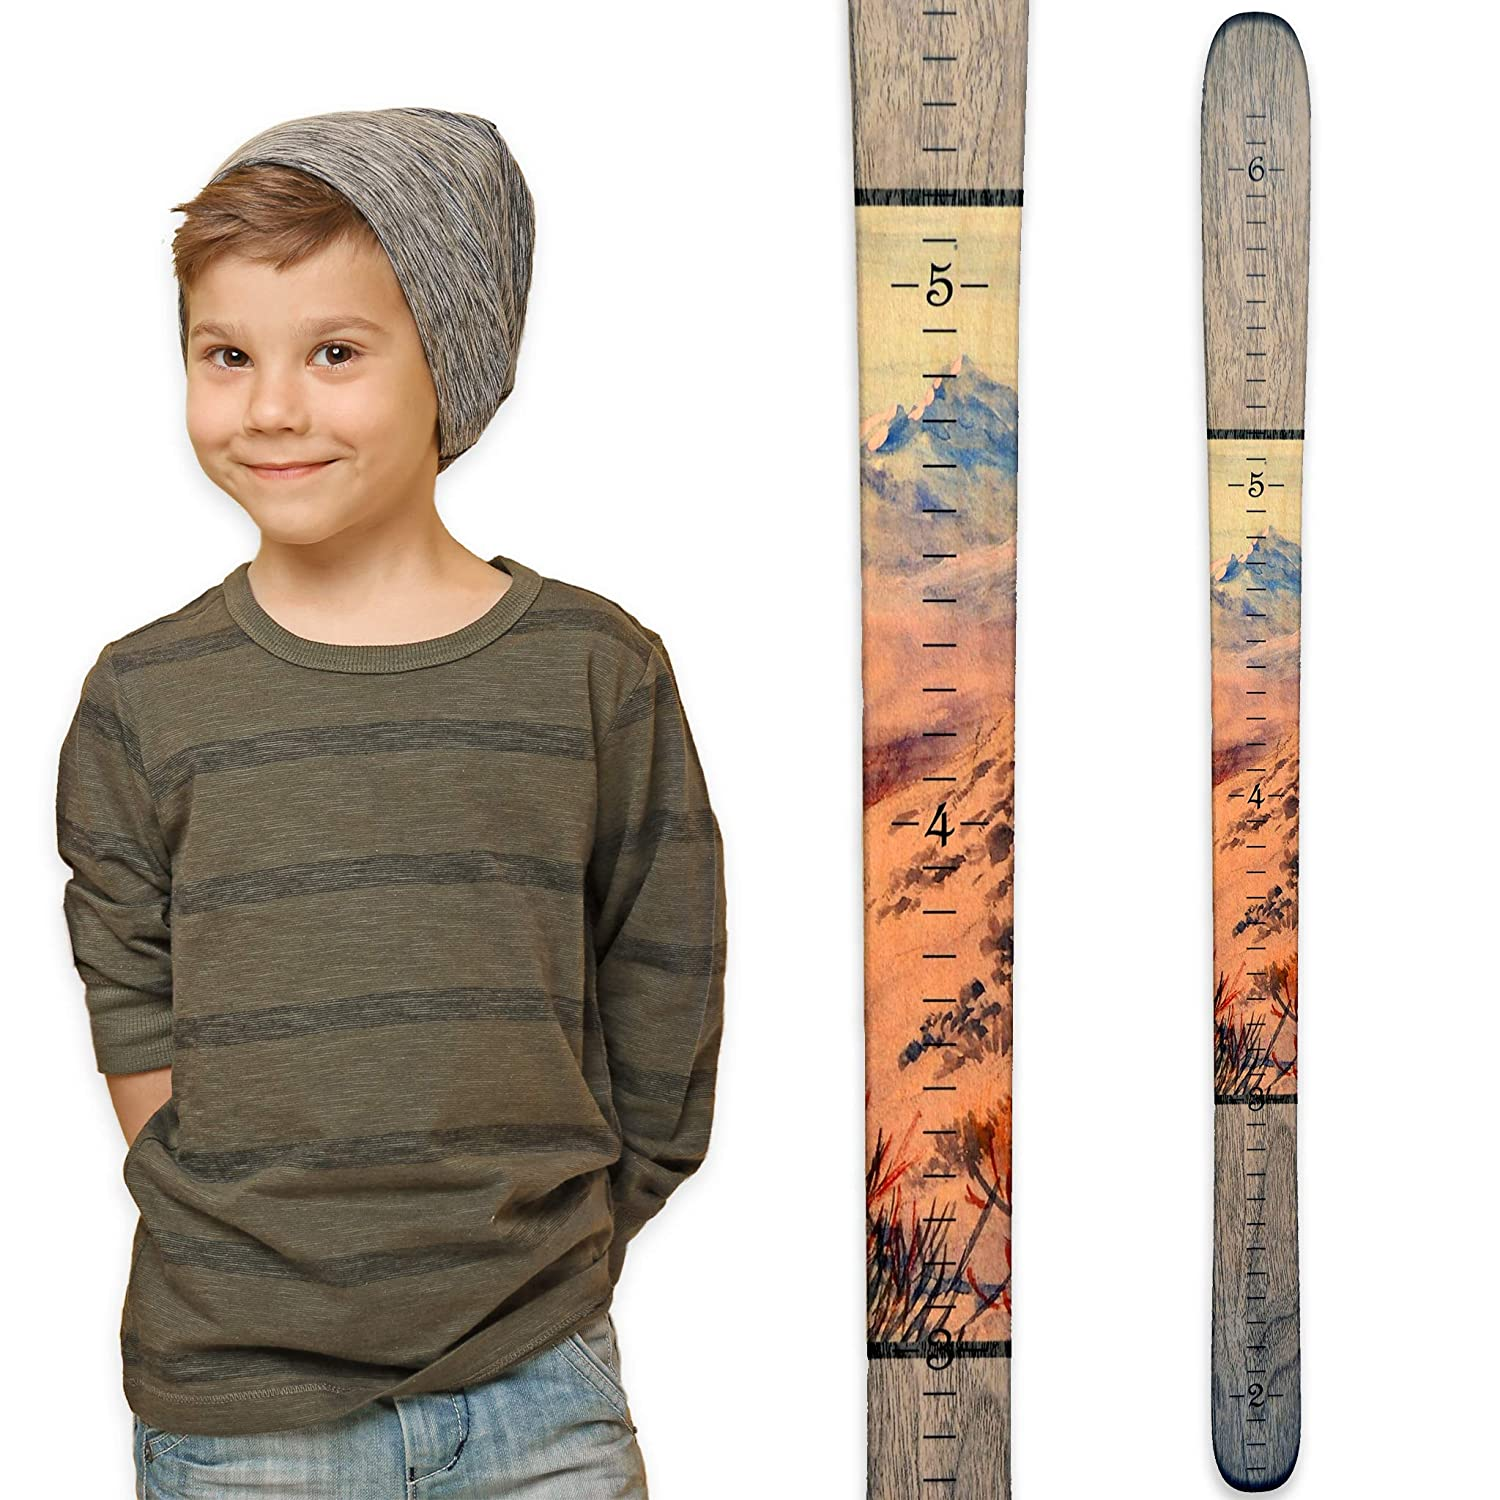 Growth Chart Art | Wooden Ski Growth Chart | Baby Skis | Ski Gifts | Wall Hanging Wood Height Chart for Measuring Kids, Children, Boys, Girls | Traditional Wood SKITW